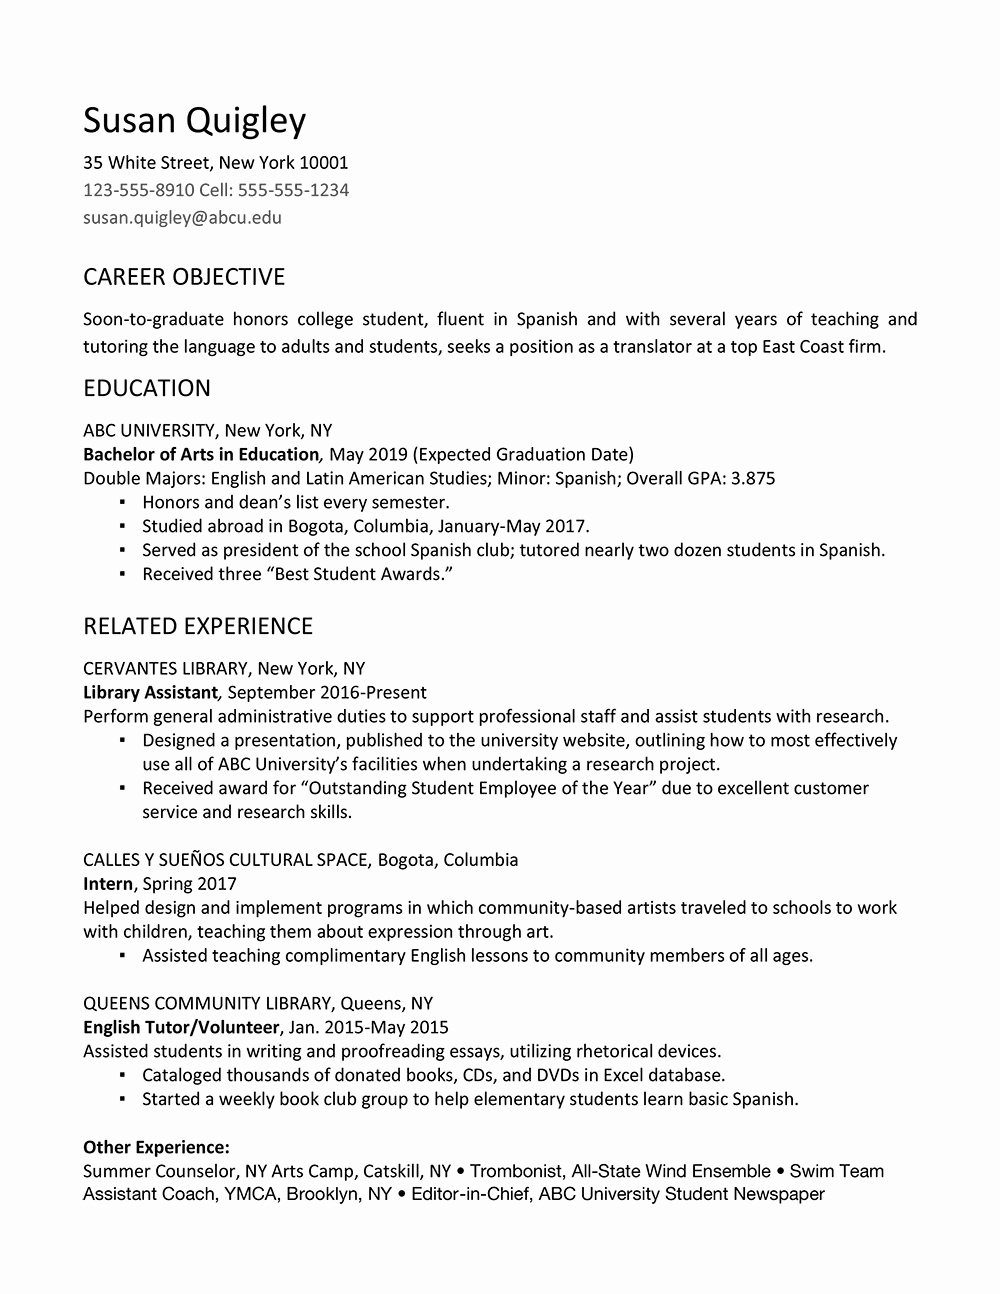 College Graduate Resume Template Inspirational Job Resume for Fresh Graduate College